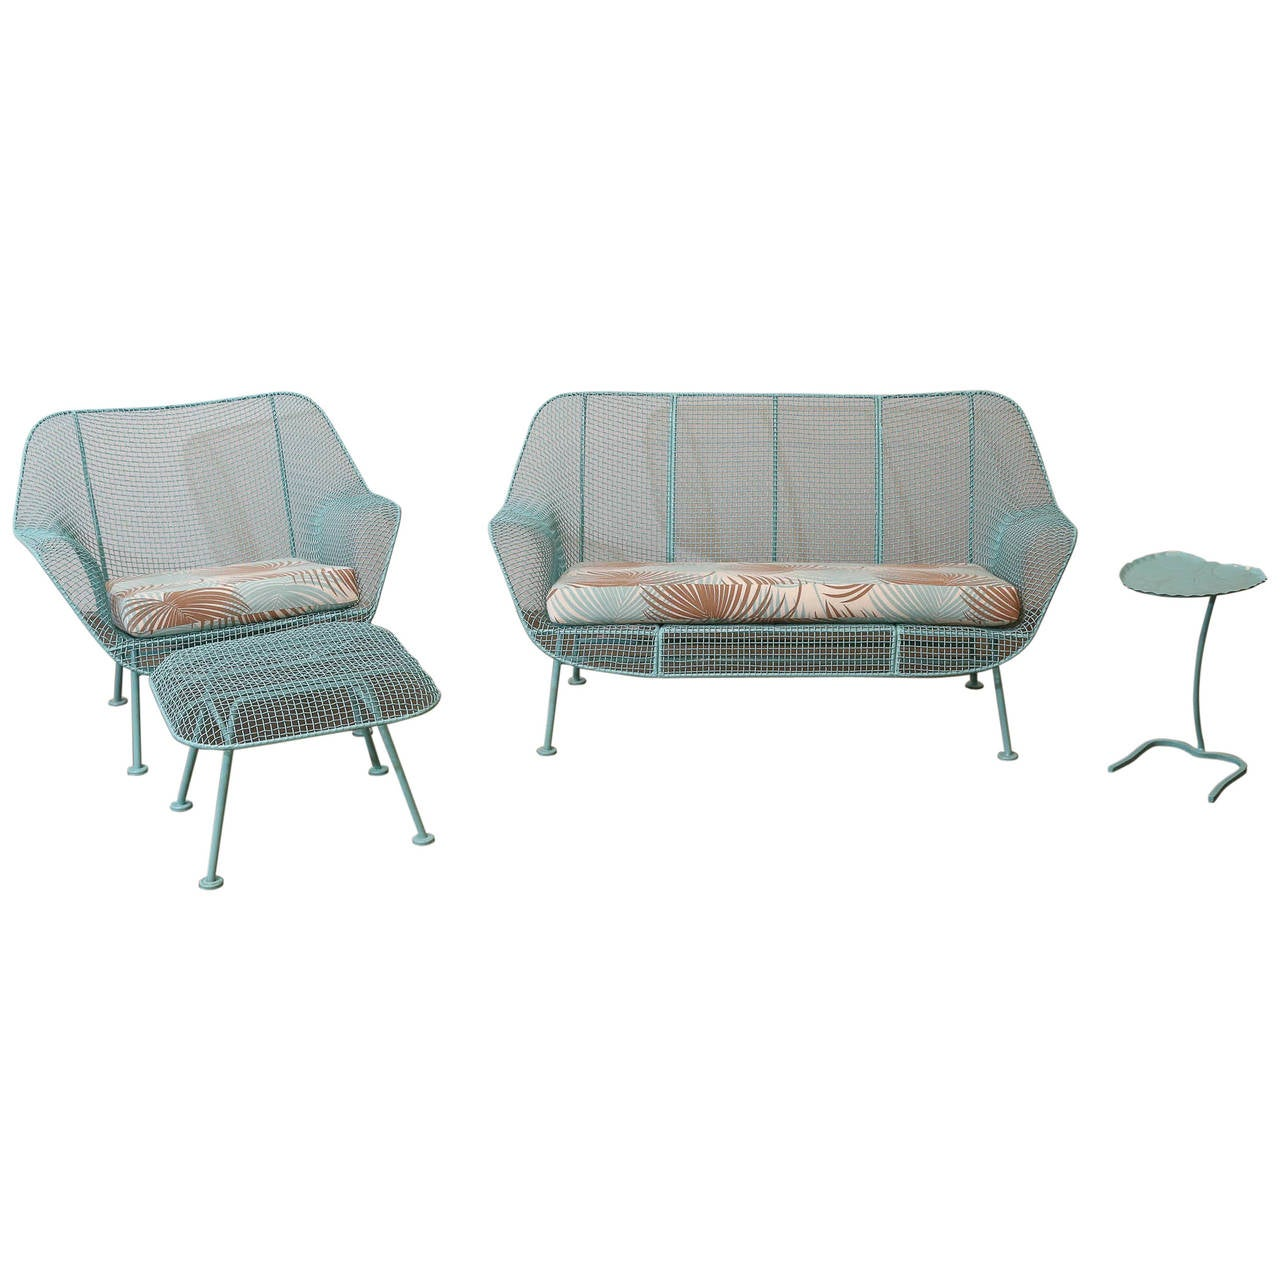 Russell woodard newly refinished in tiffany blue patio set for Woodard patio furniture